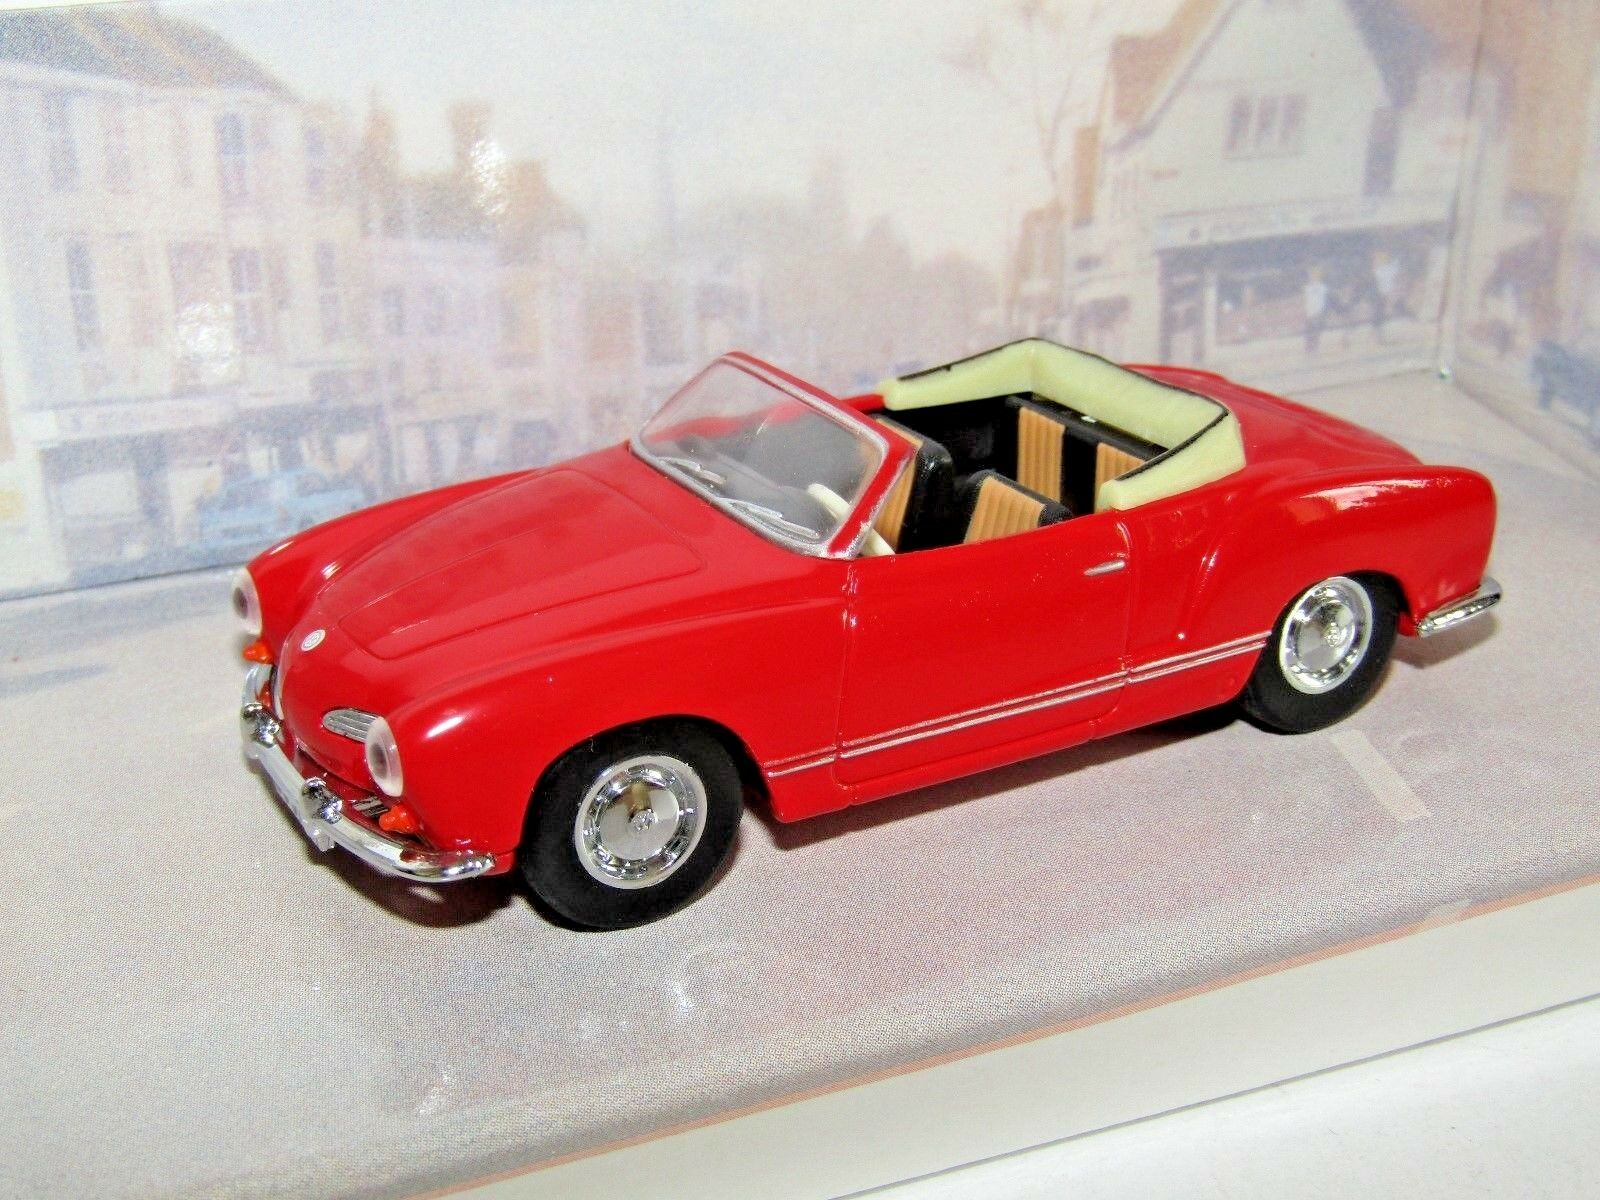 MATCHBOX DINKY DINKY DINKY 1968 VW KARMANN GHIA CONgreenIBLE RED 1 43 DY035 A 915311